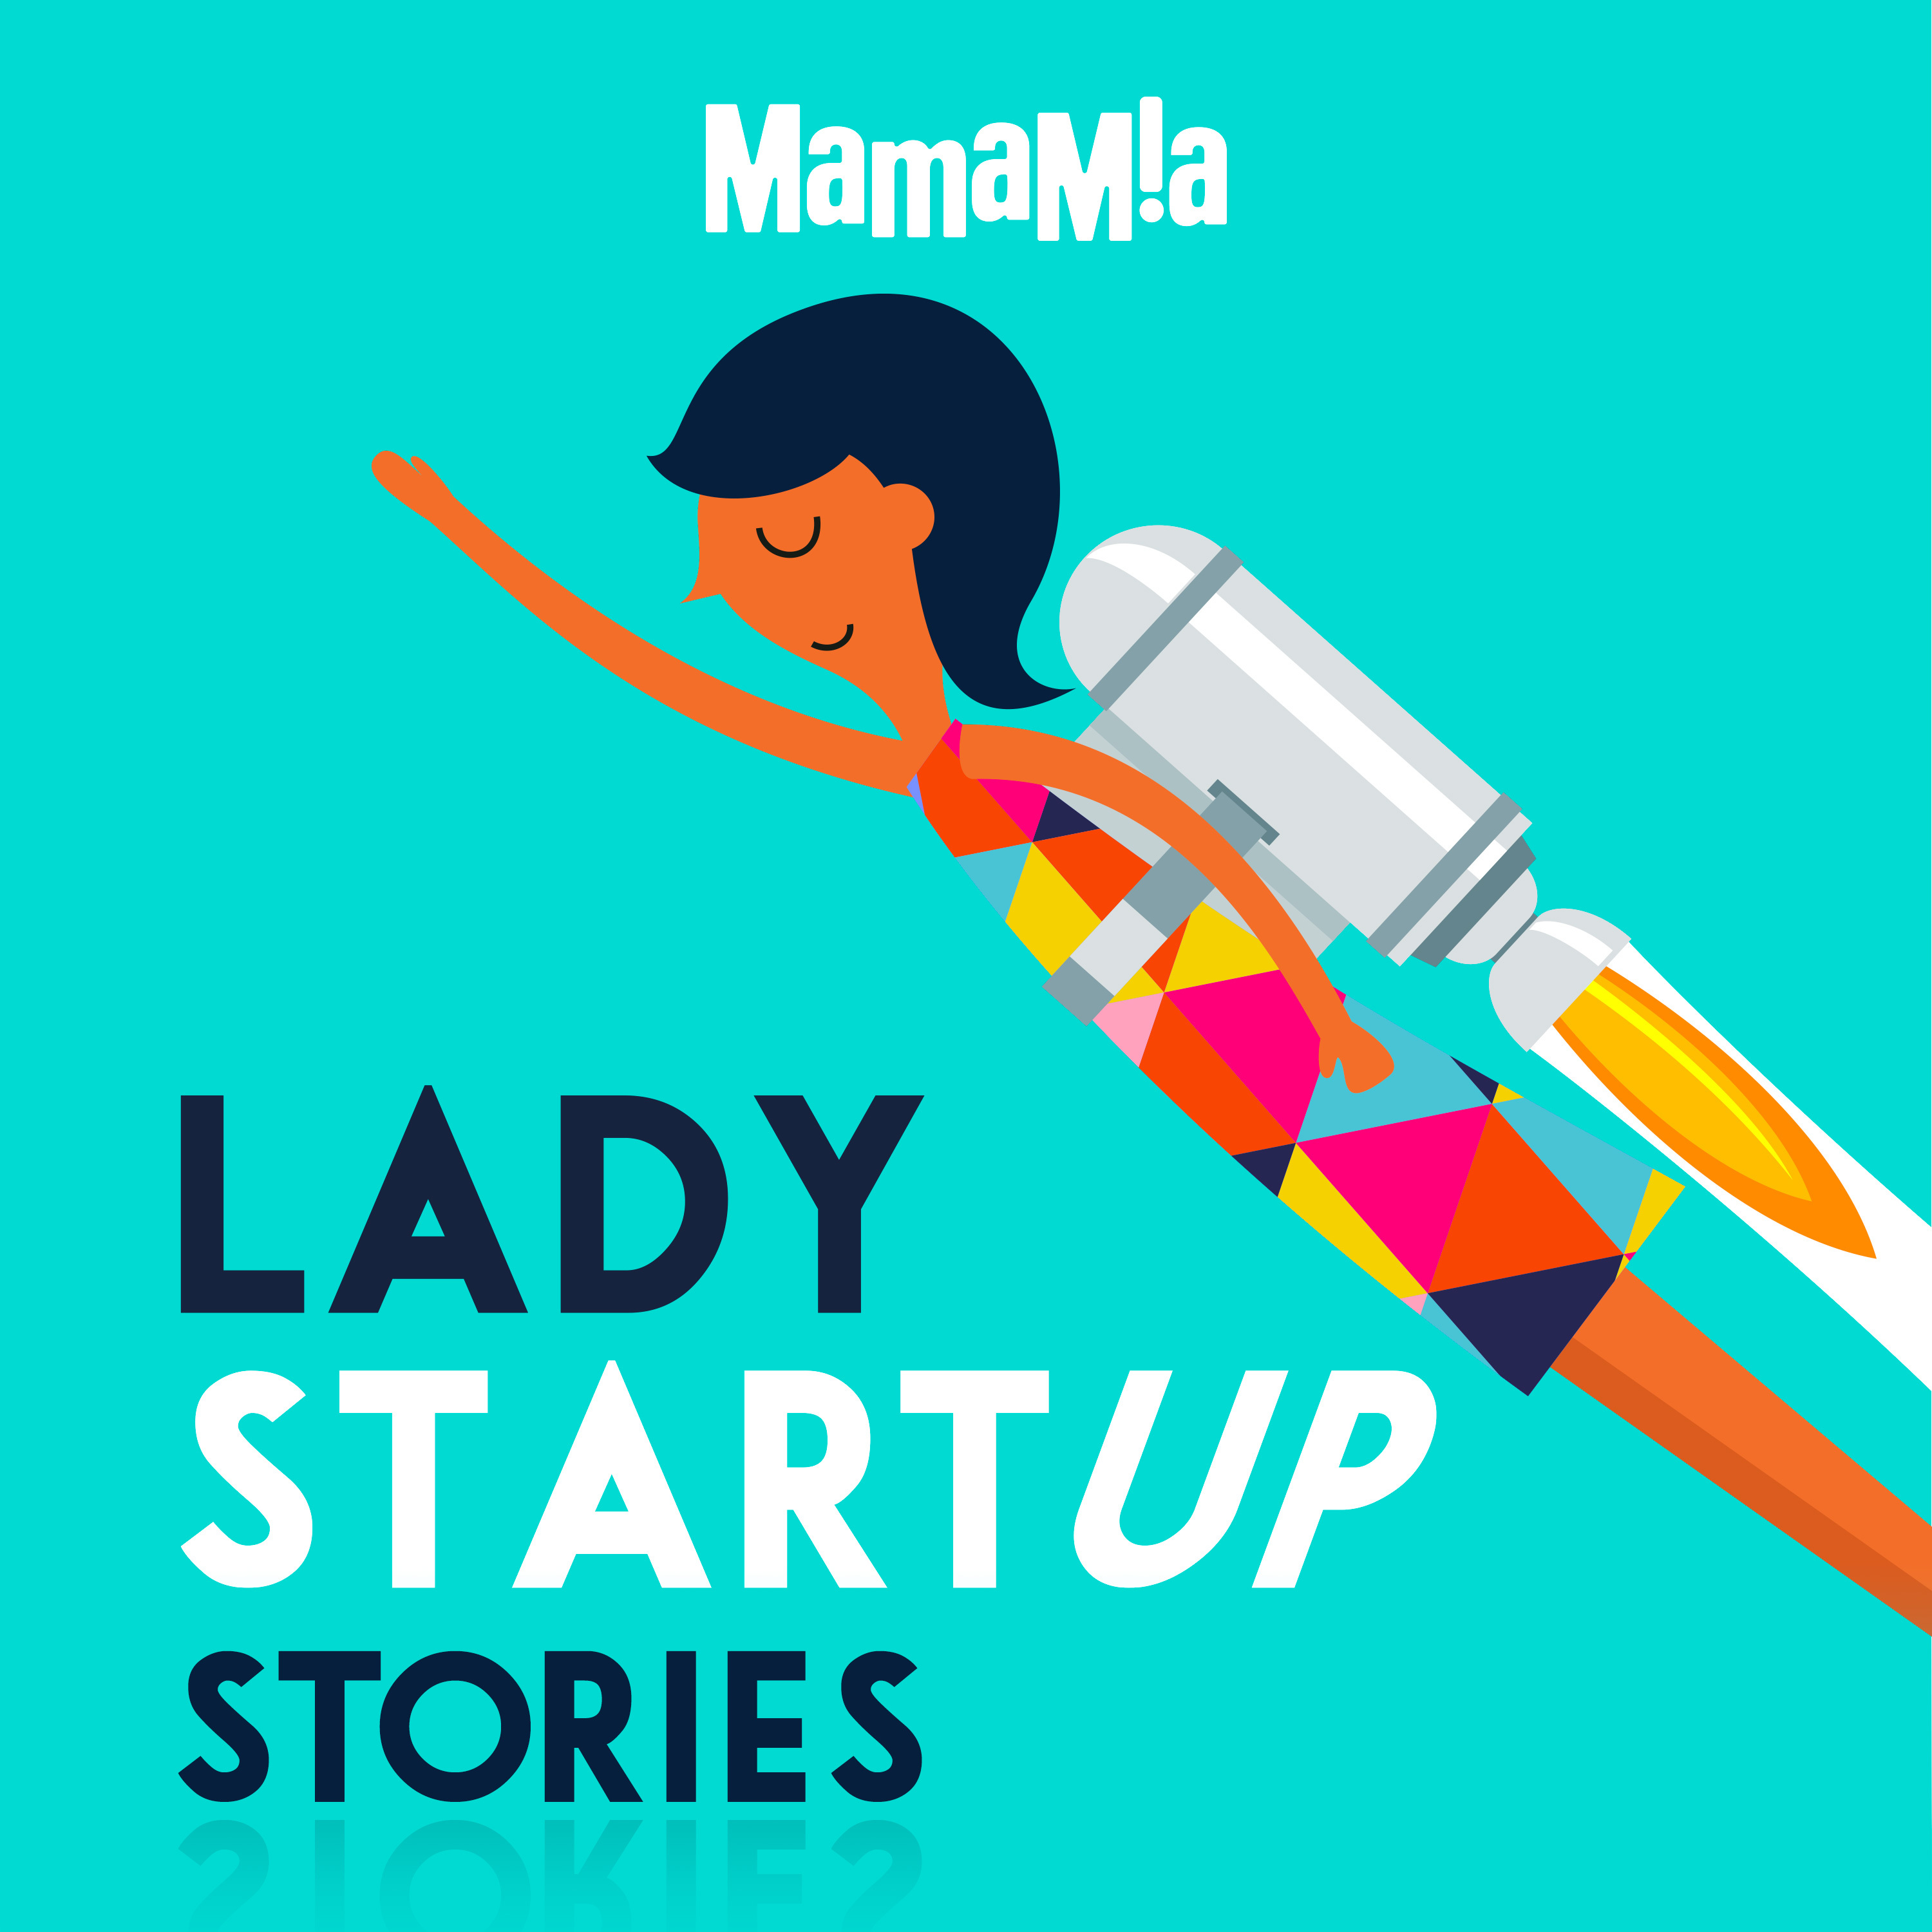 Lady Startup Coming Soon